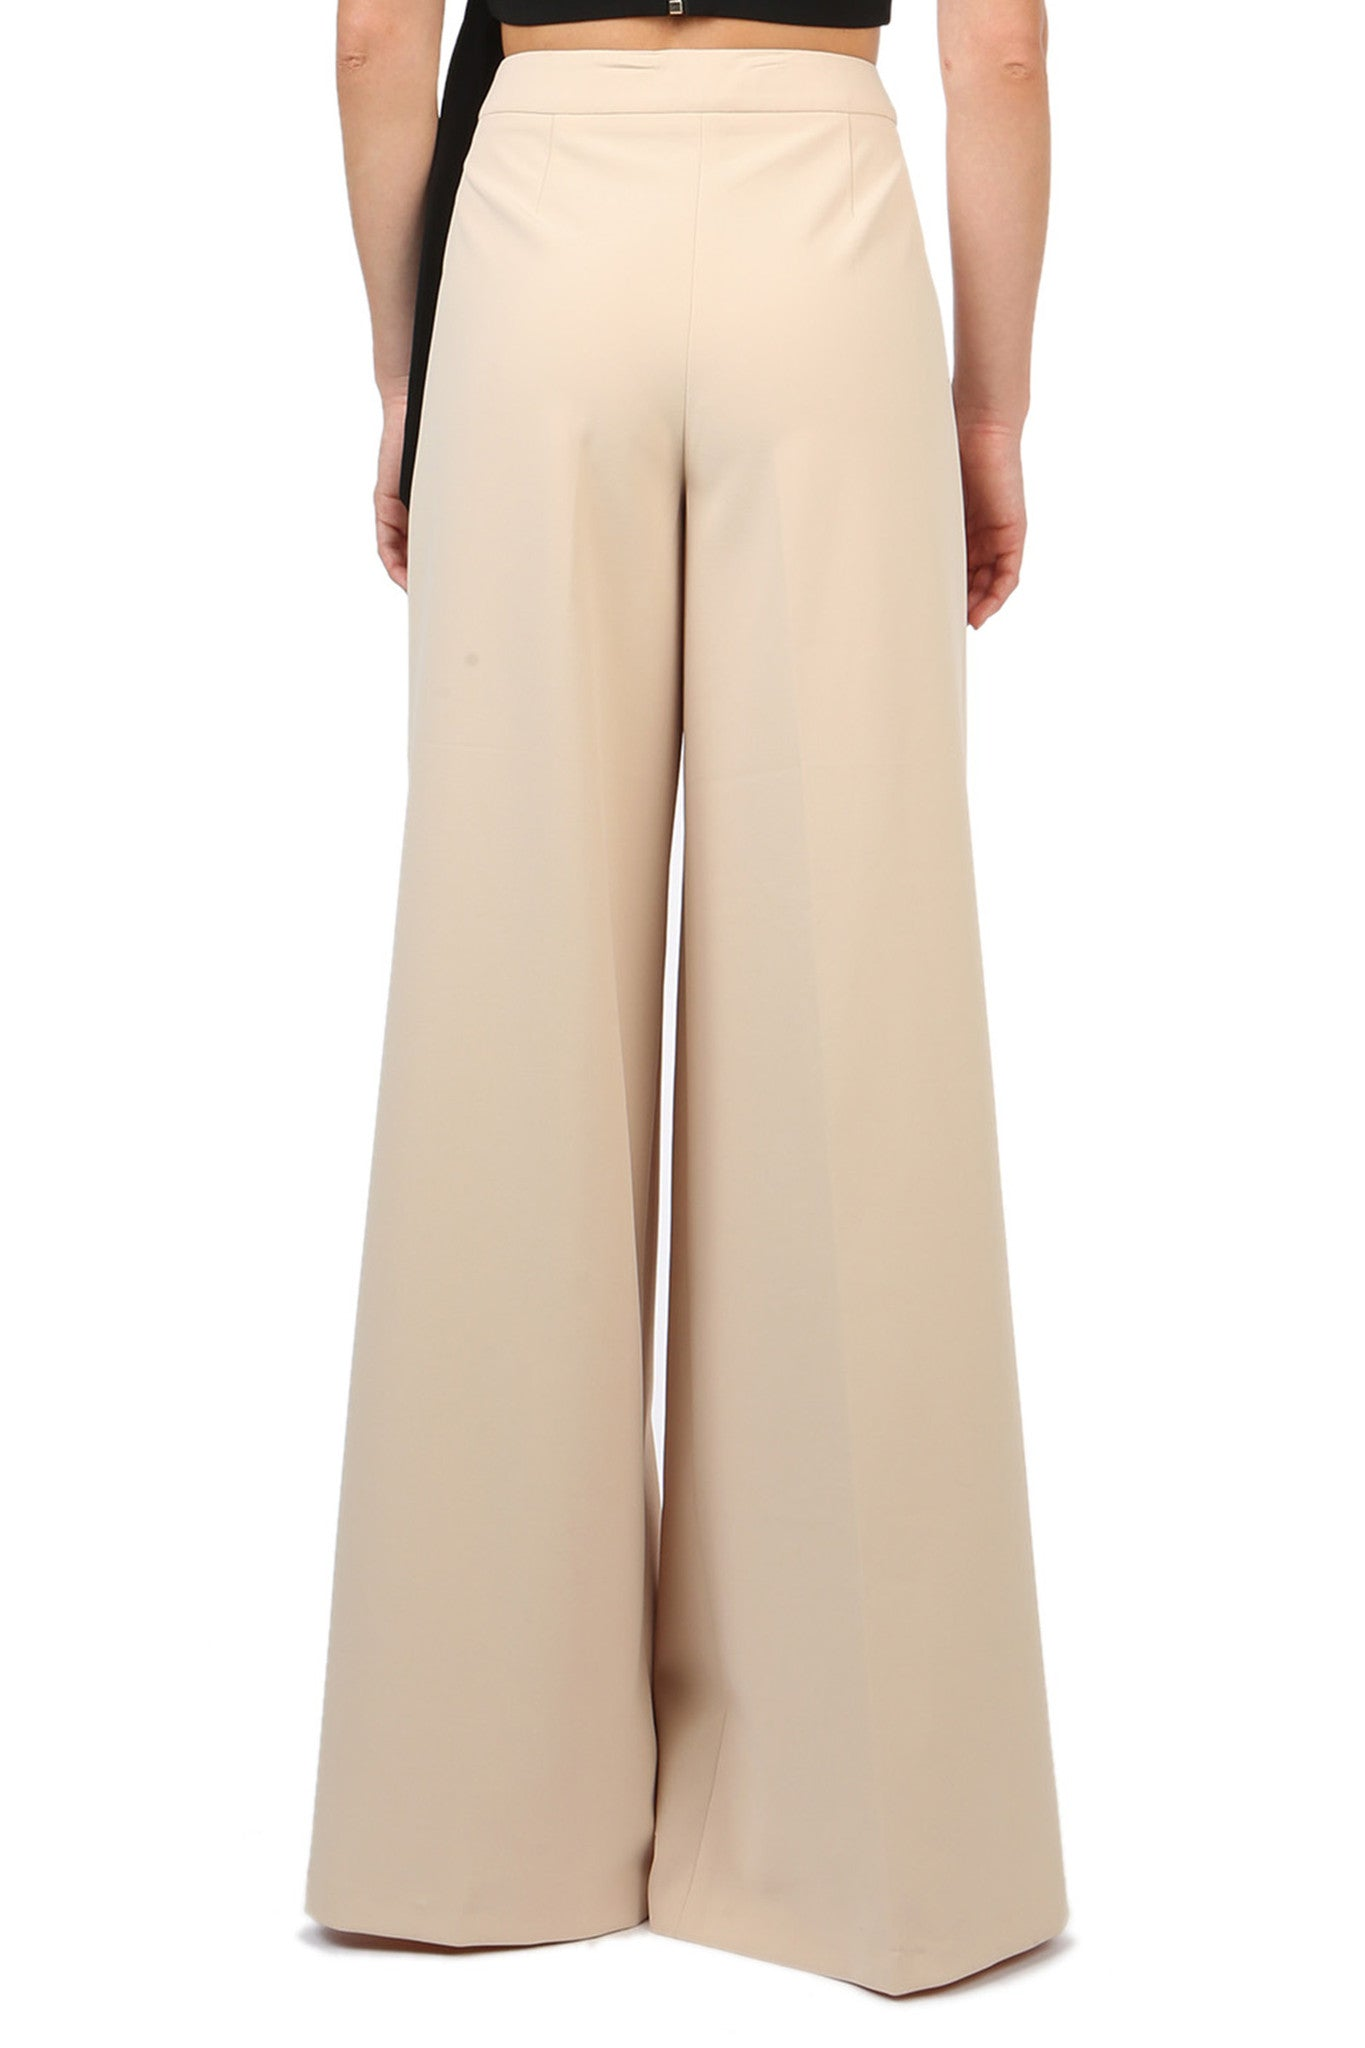 Jay Godfrey Sand Wide-Leg Pants - Back View